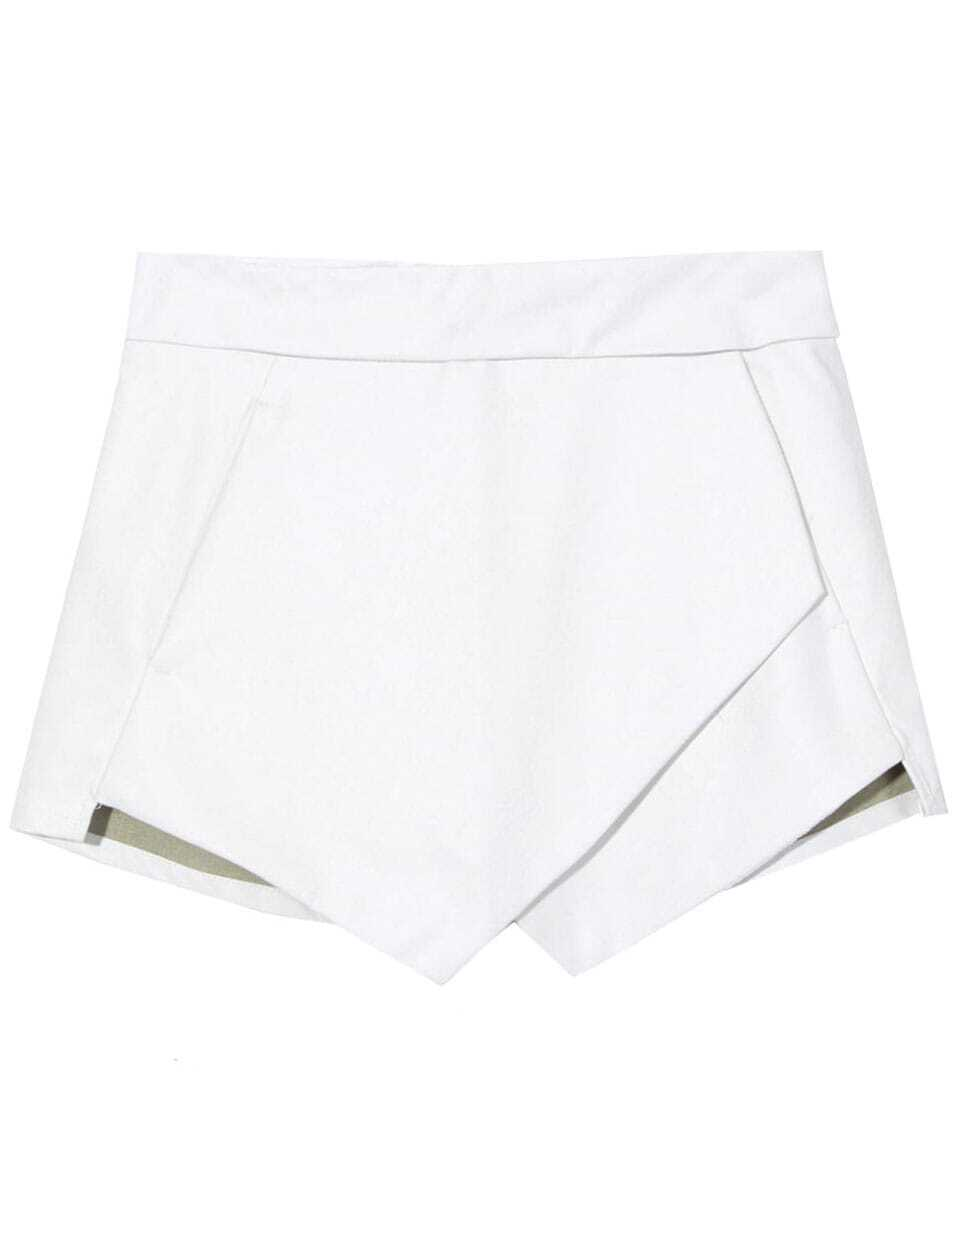 White Asymmetrical Leather Shorts -SheIn(Sheinside)